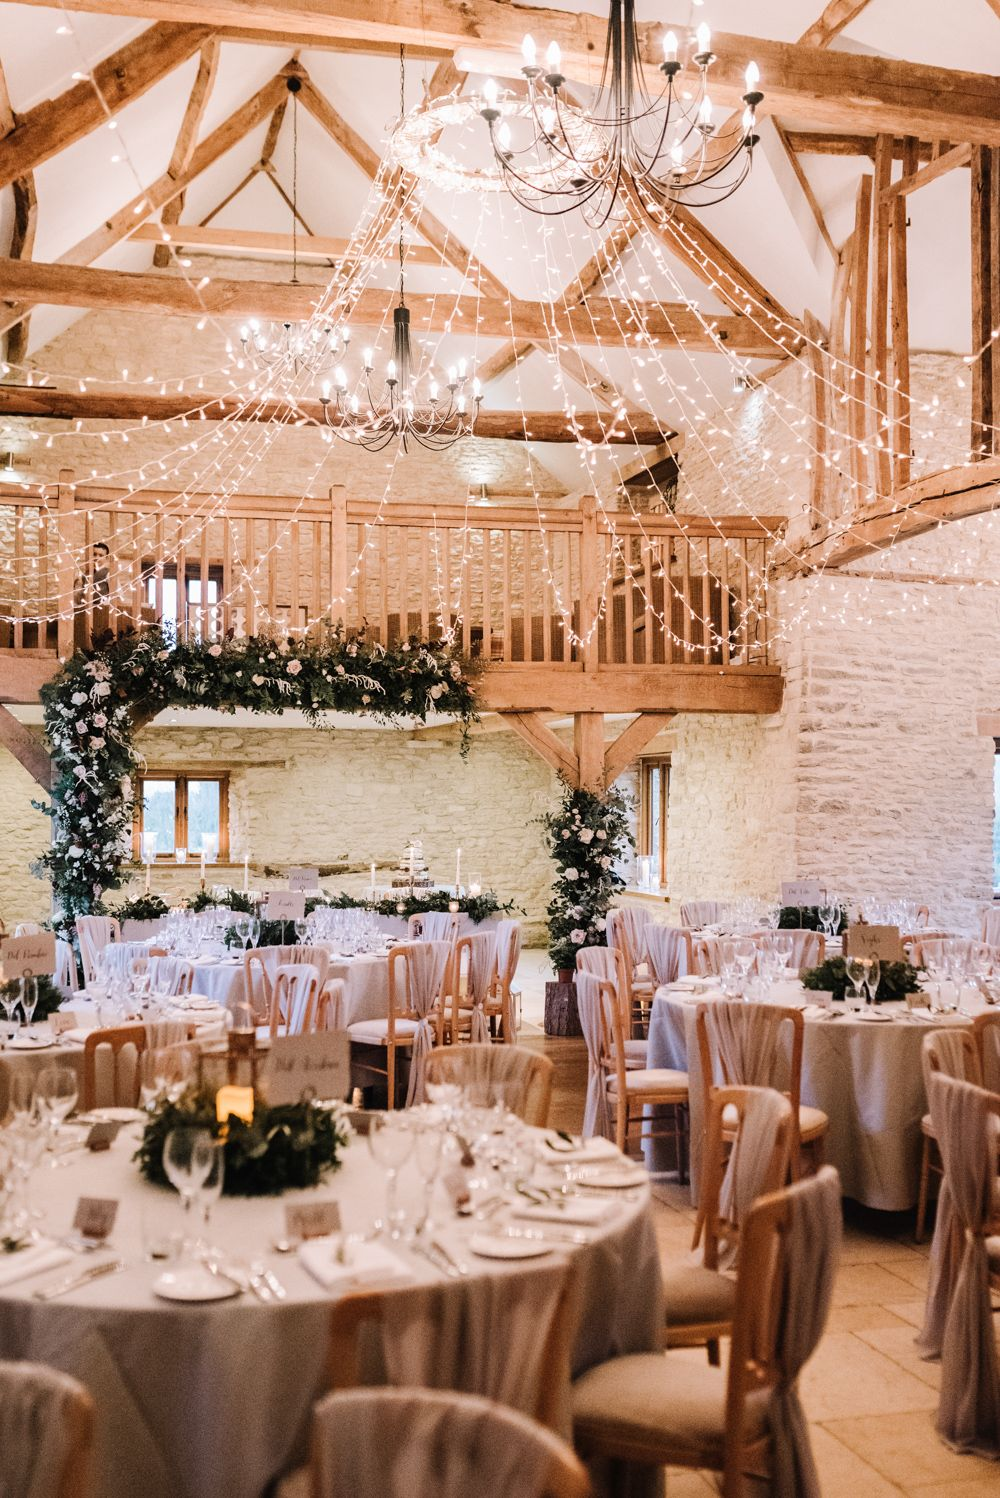 Kingscote Barn Wedding Twinkling Fairy Lights In Winter With Grey